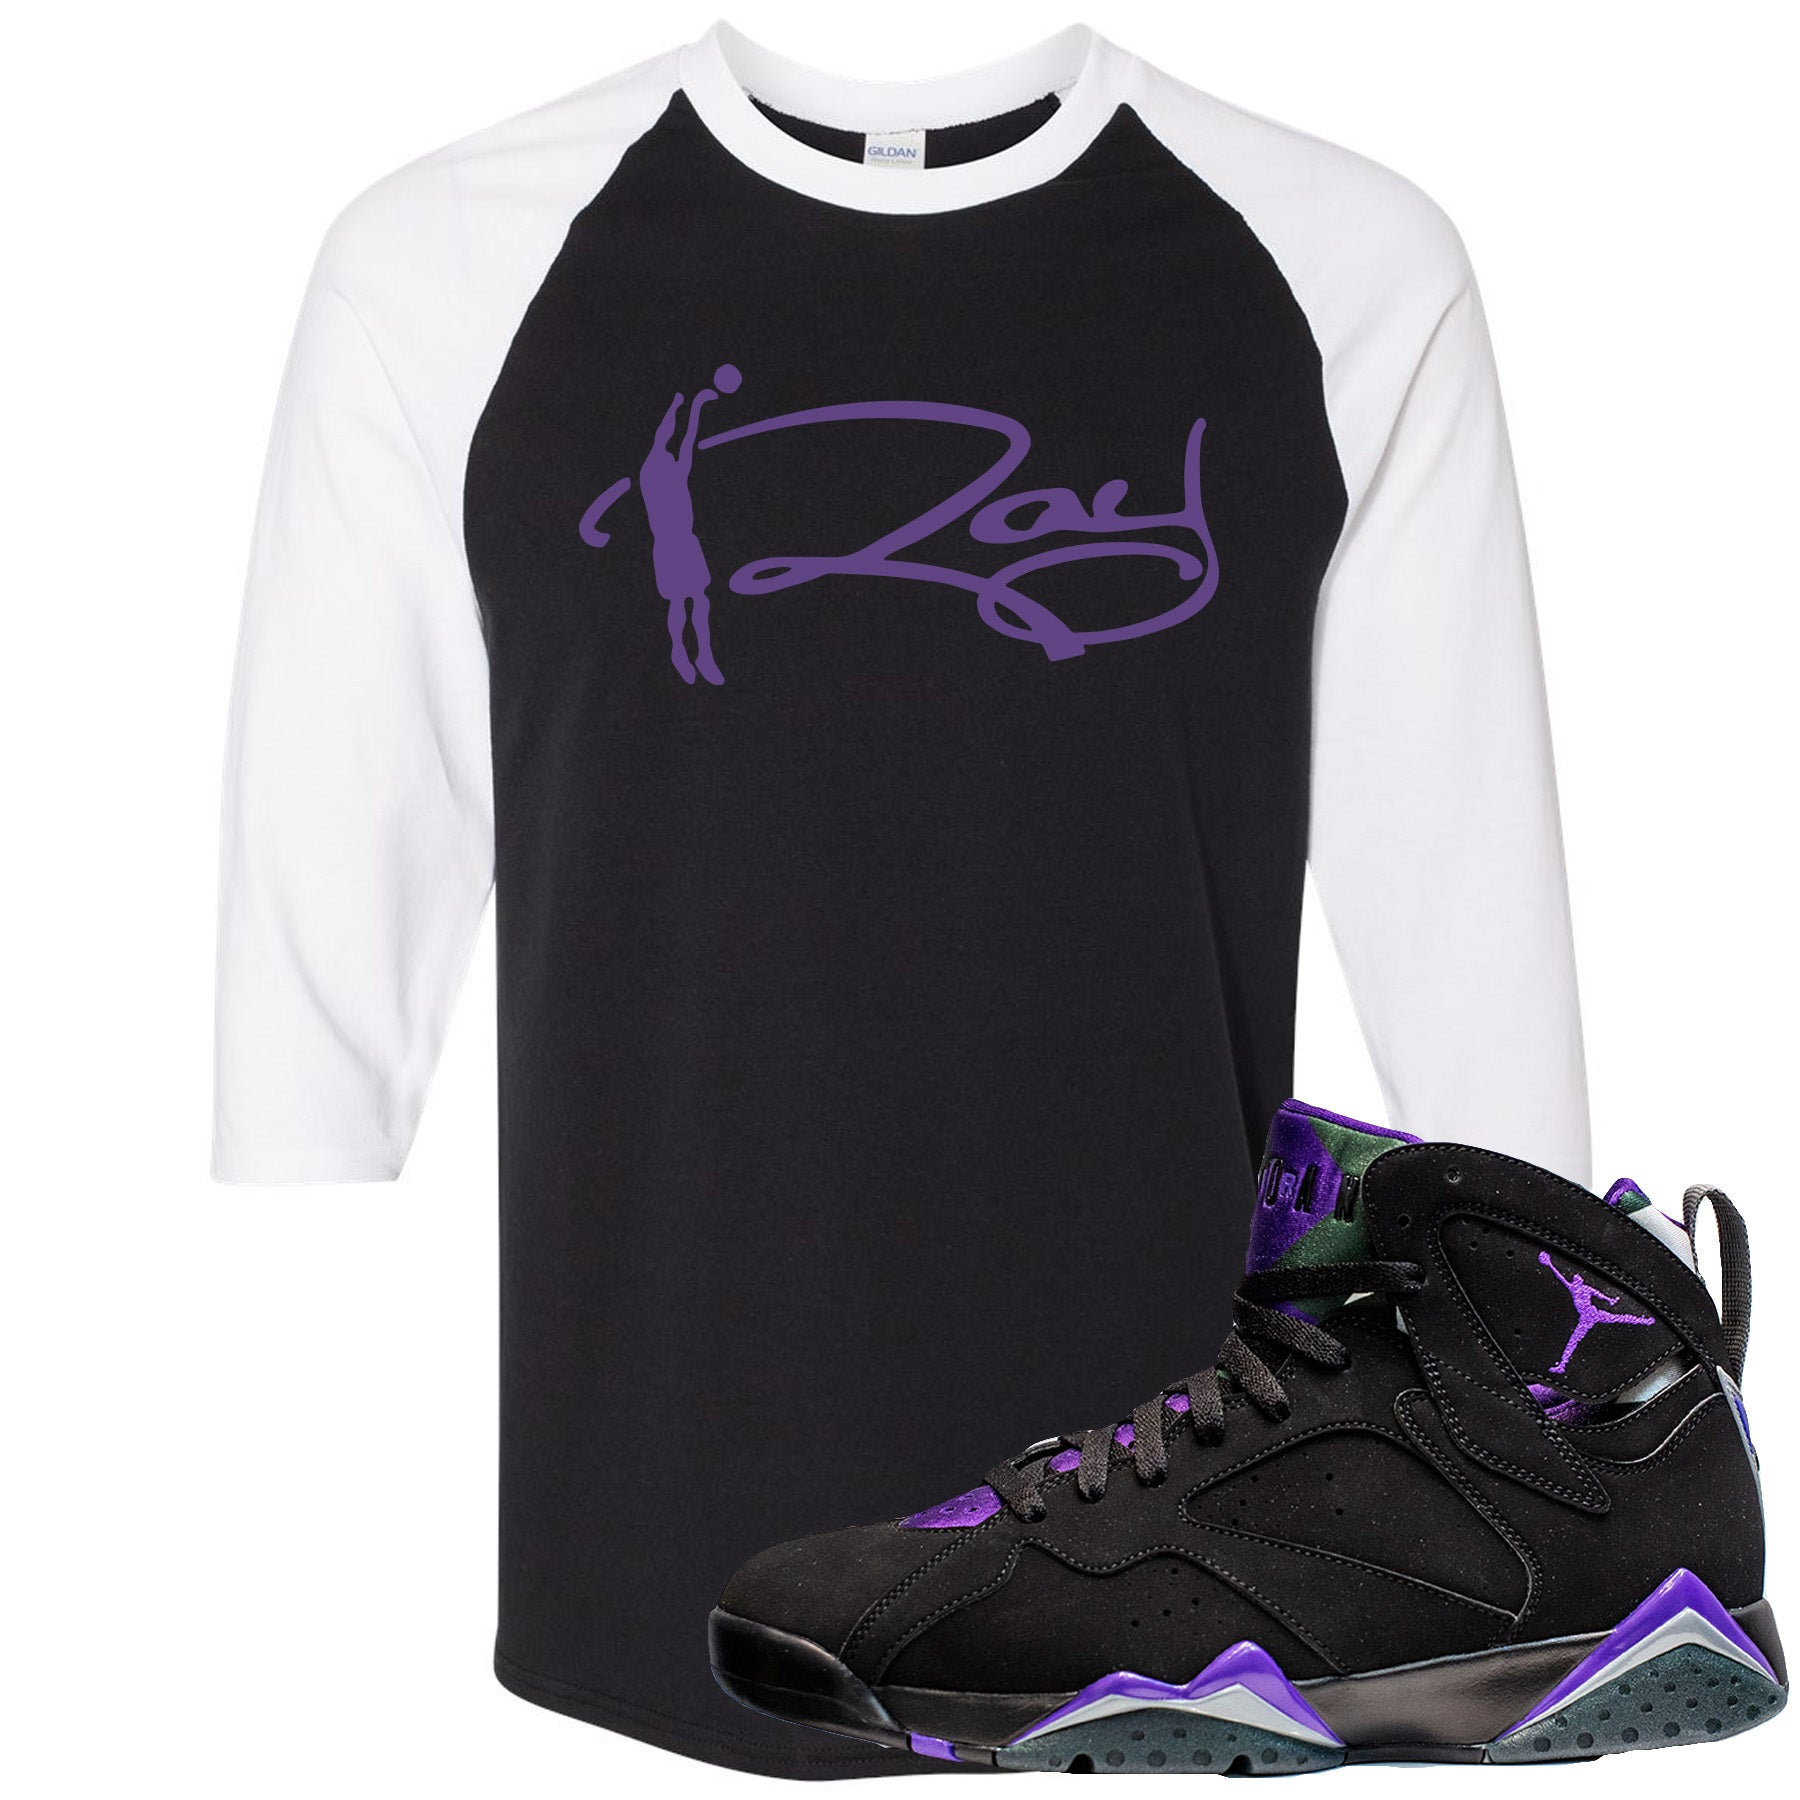 reputable site fe776 e979f Air Jordan 7 Ray Allen Sneaker Match Ray Signature Black and White Raglan  T-Shirt